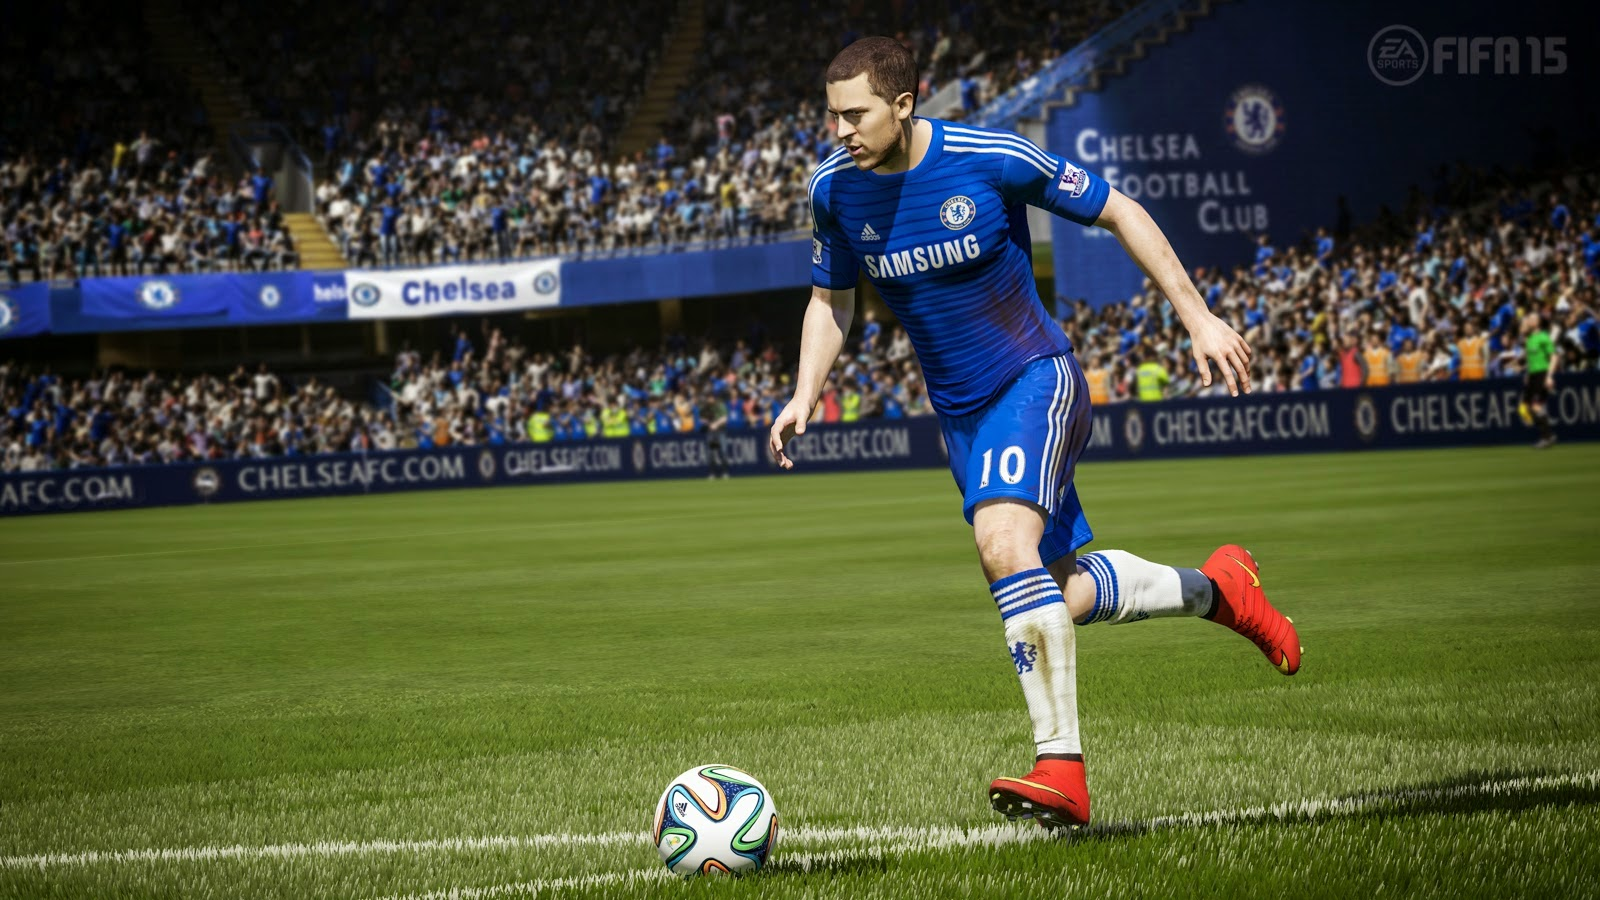 FIFA 15 Full Version For PC screenshot by www.ifub.net